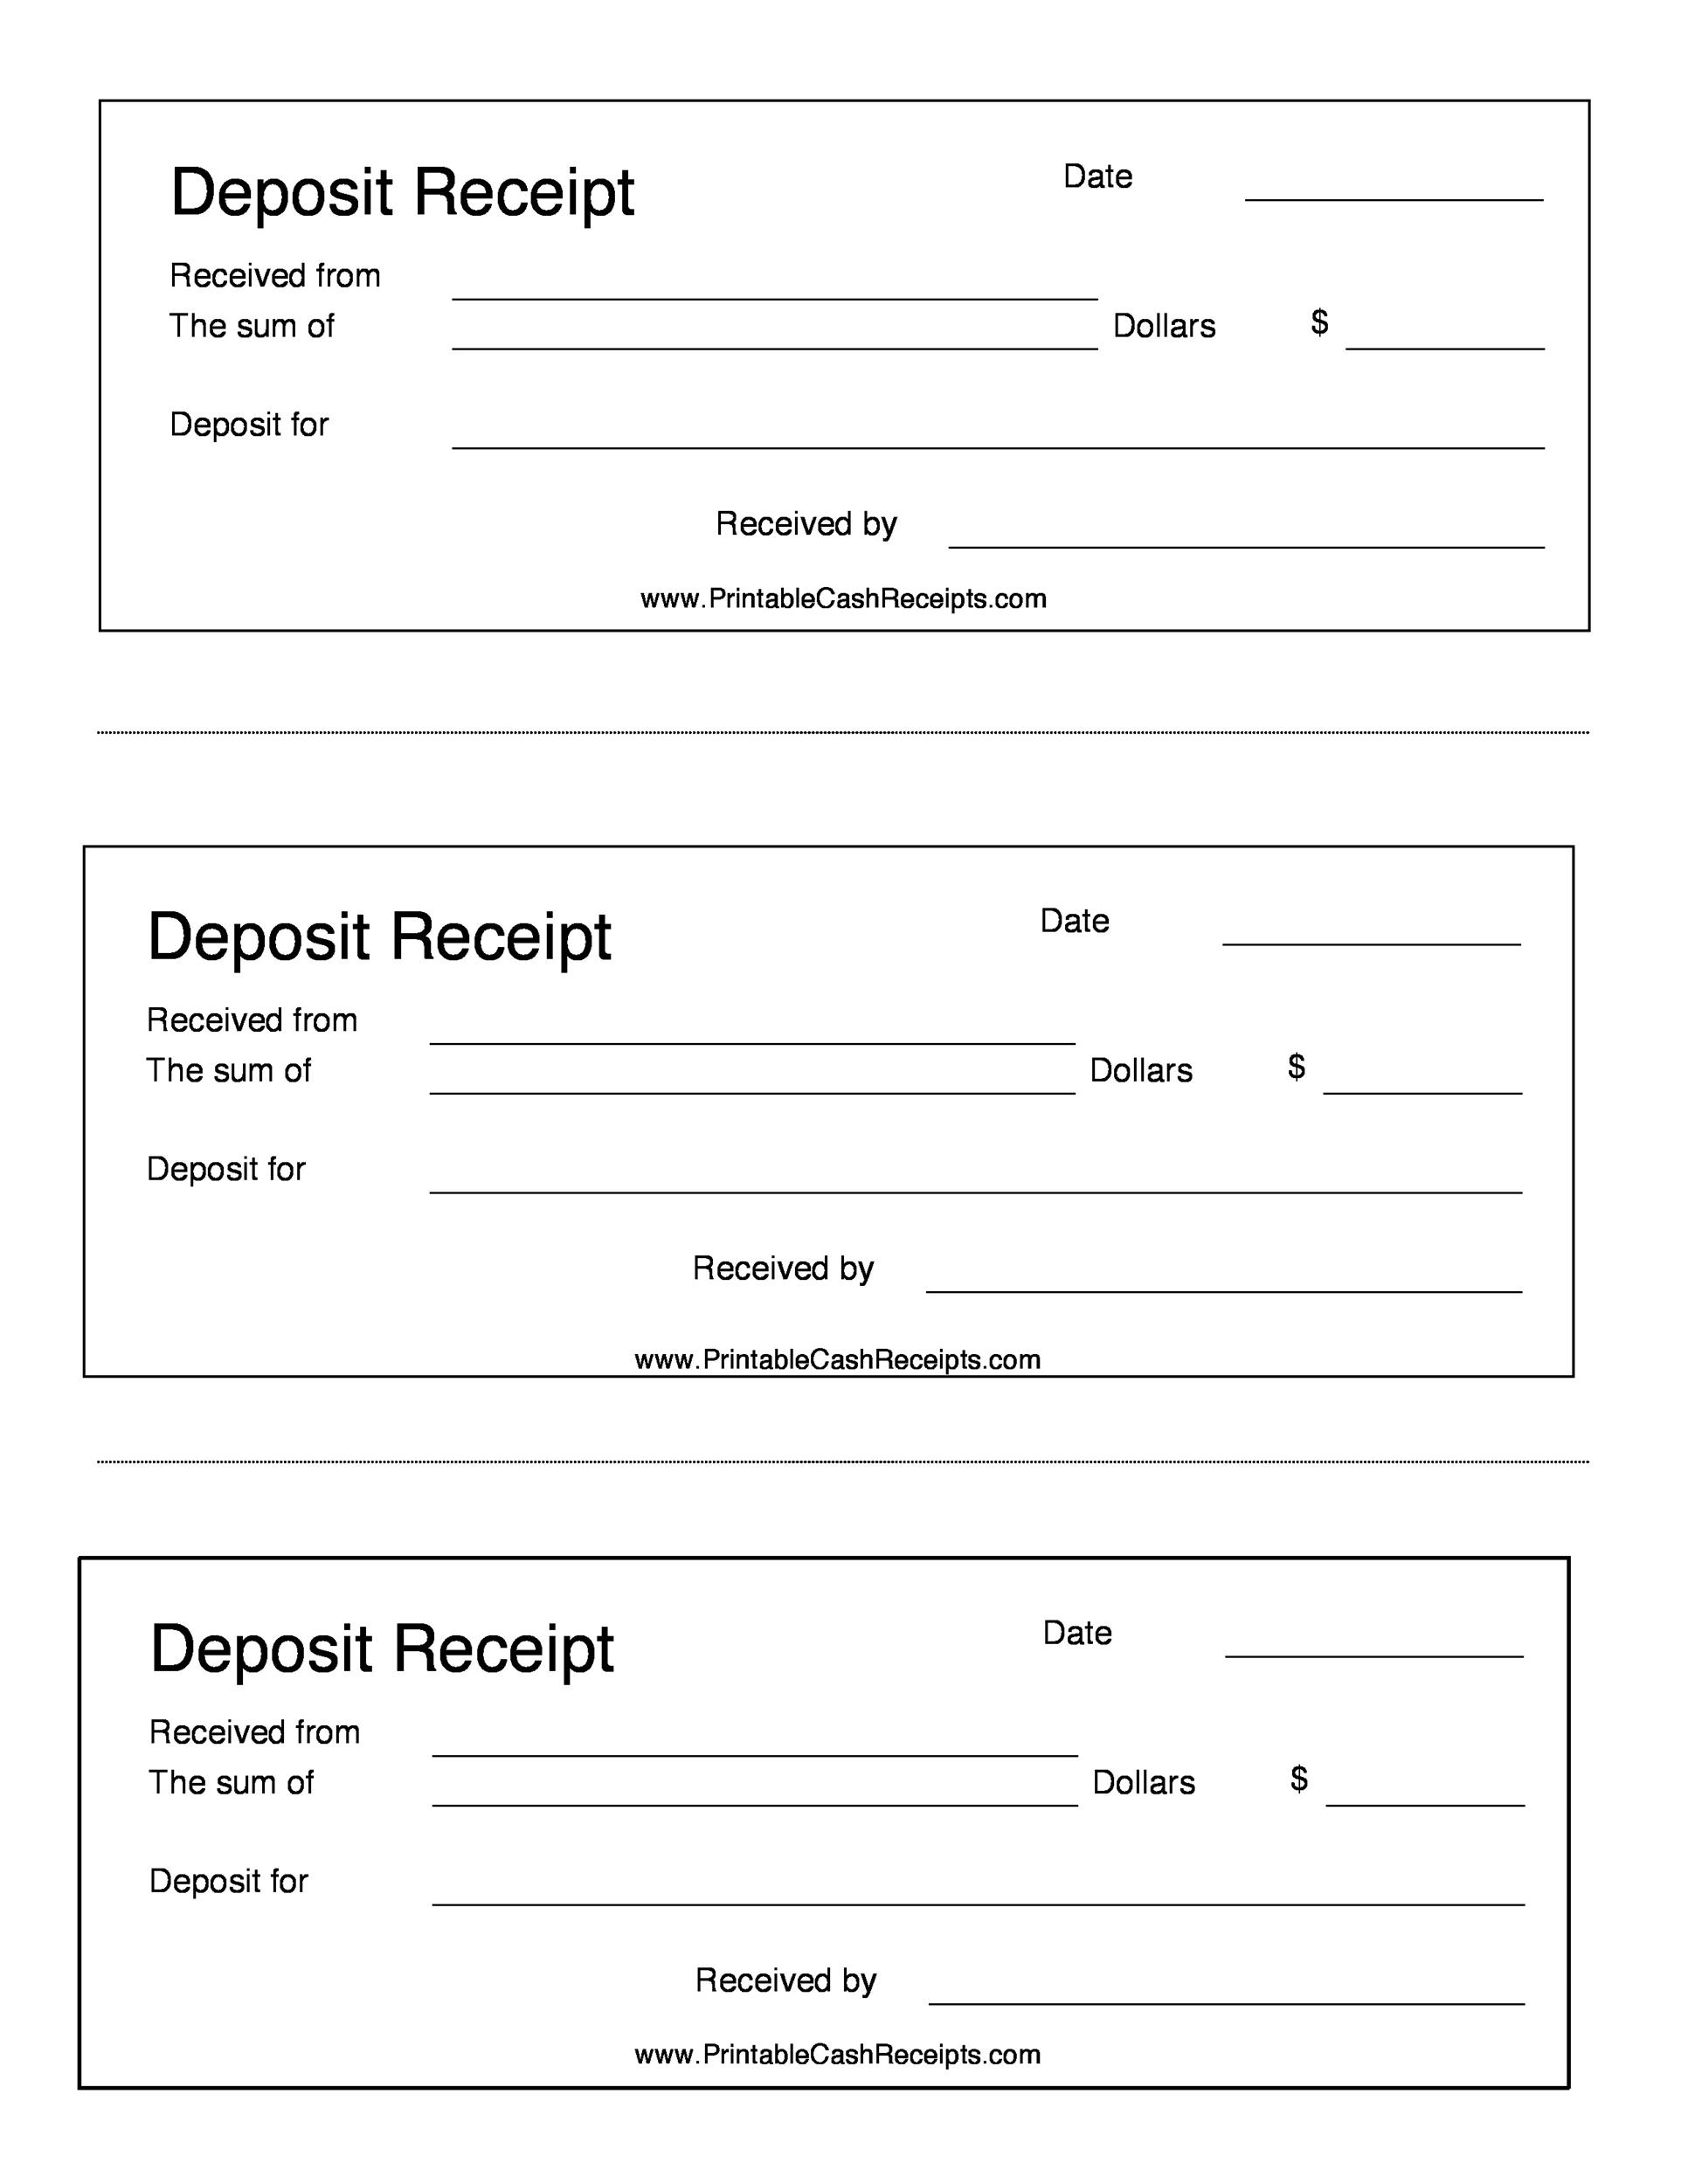 50+ Free Receipt Templates (Cash, Sales, Donation, Taxi...)